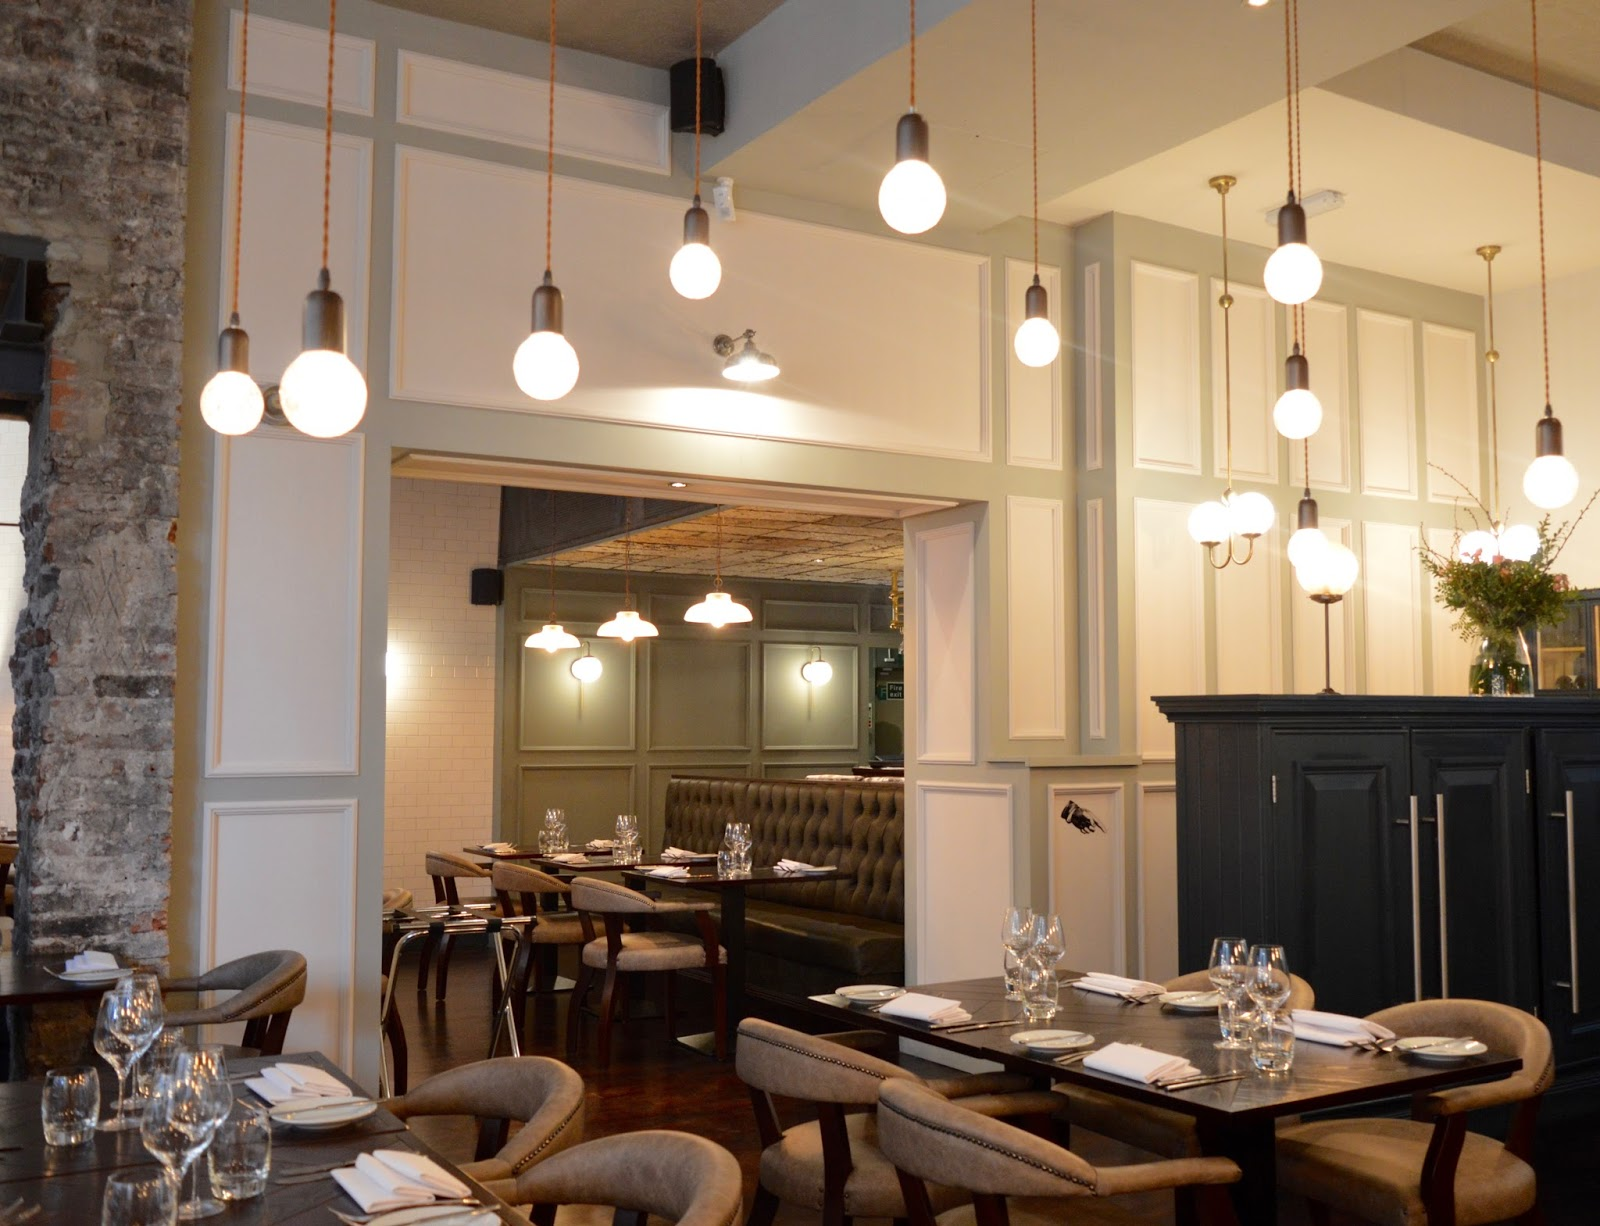 Dobson and Parnell Newcastle Menu Review  - restaurant interior